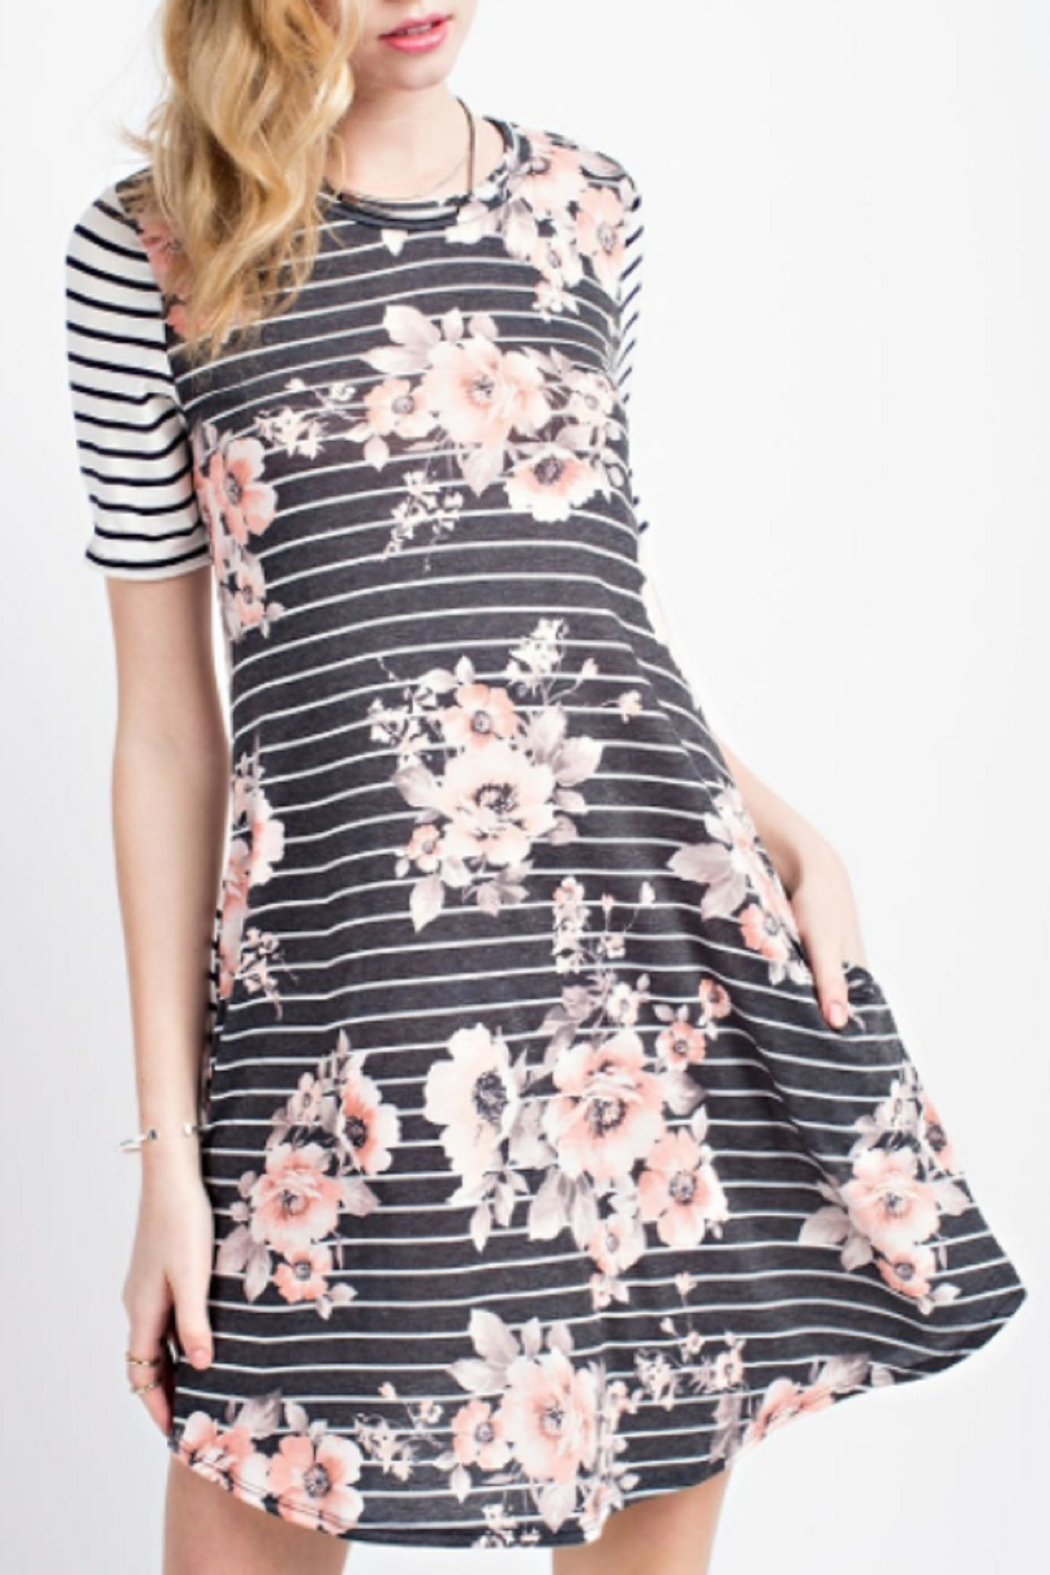 12pm by Mon Ami Striped Floral Dress - Main Image